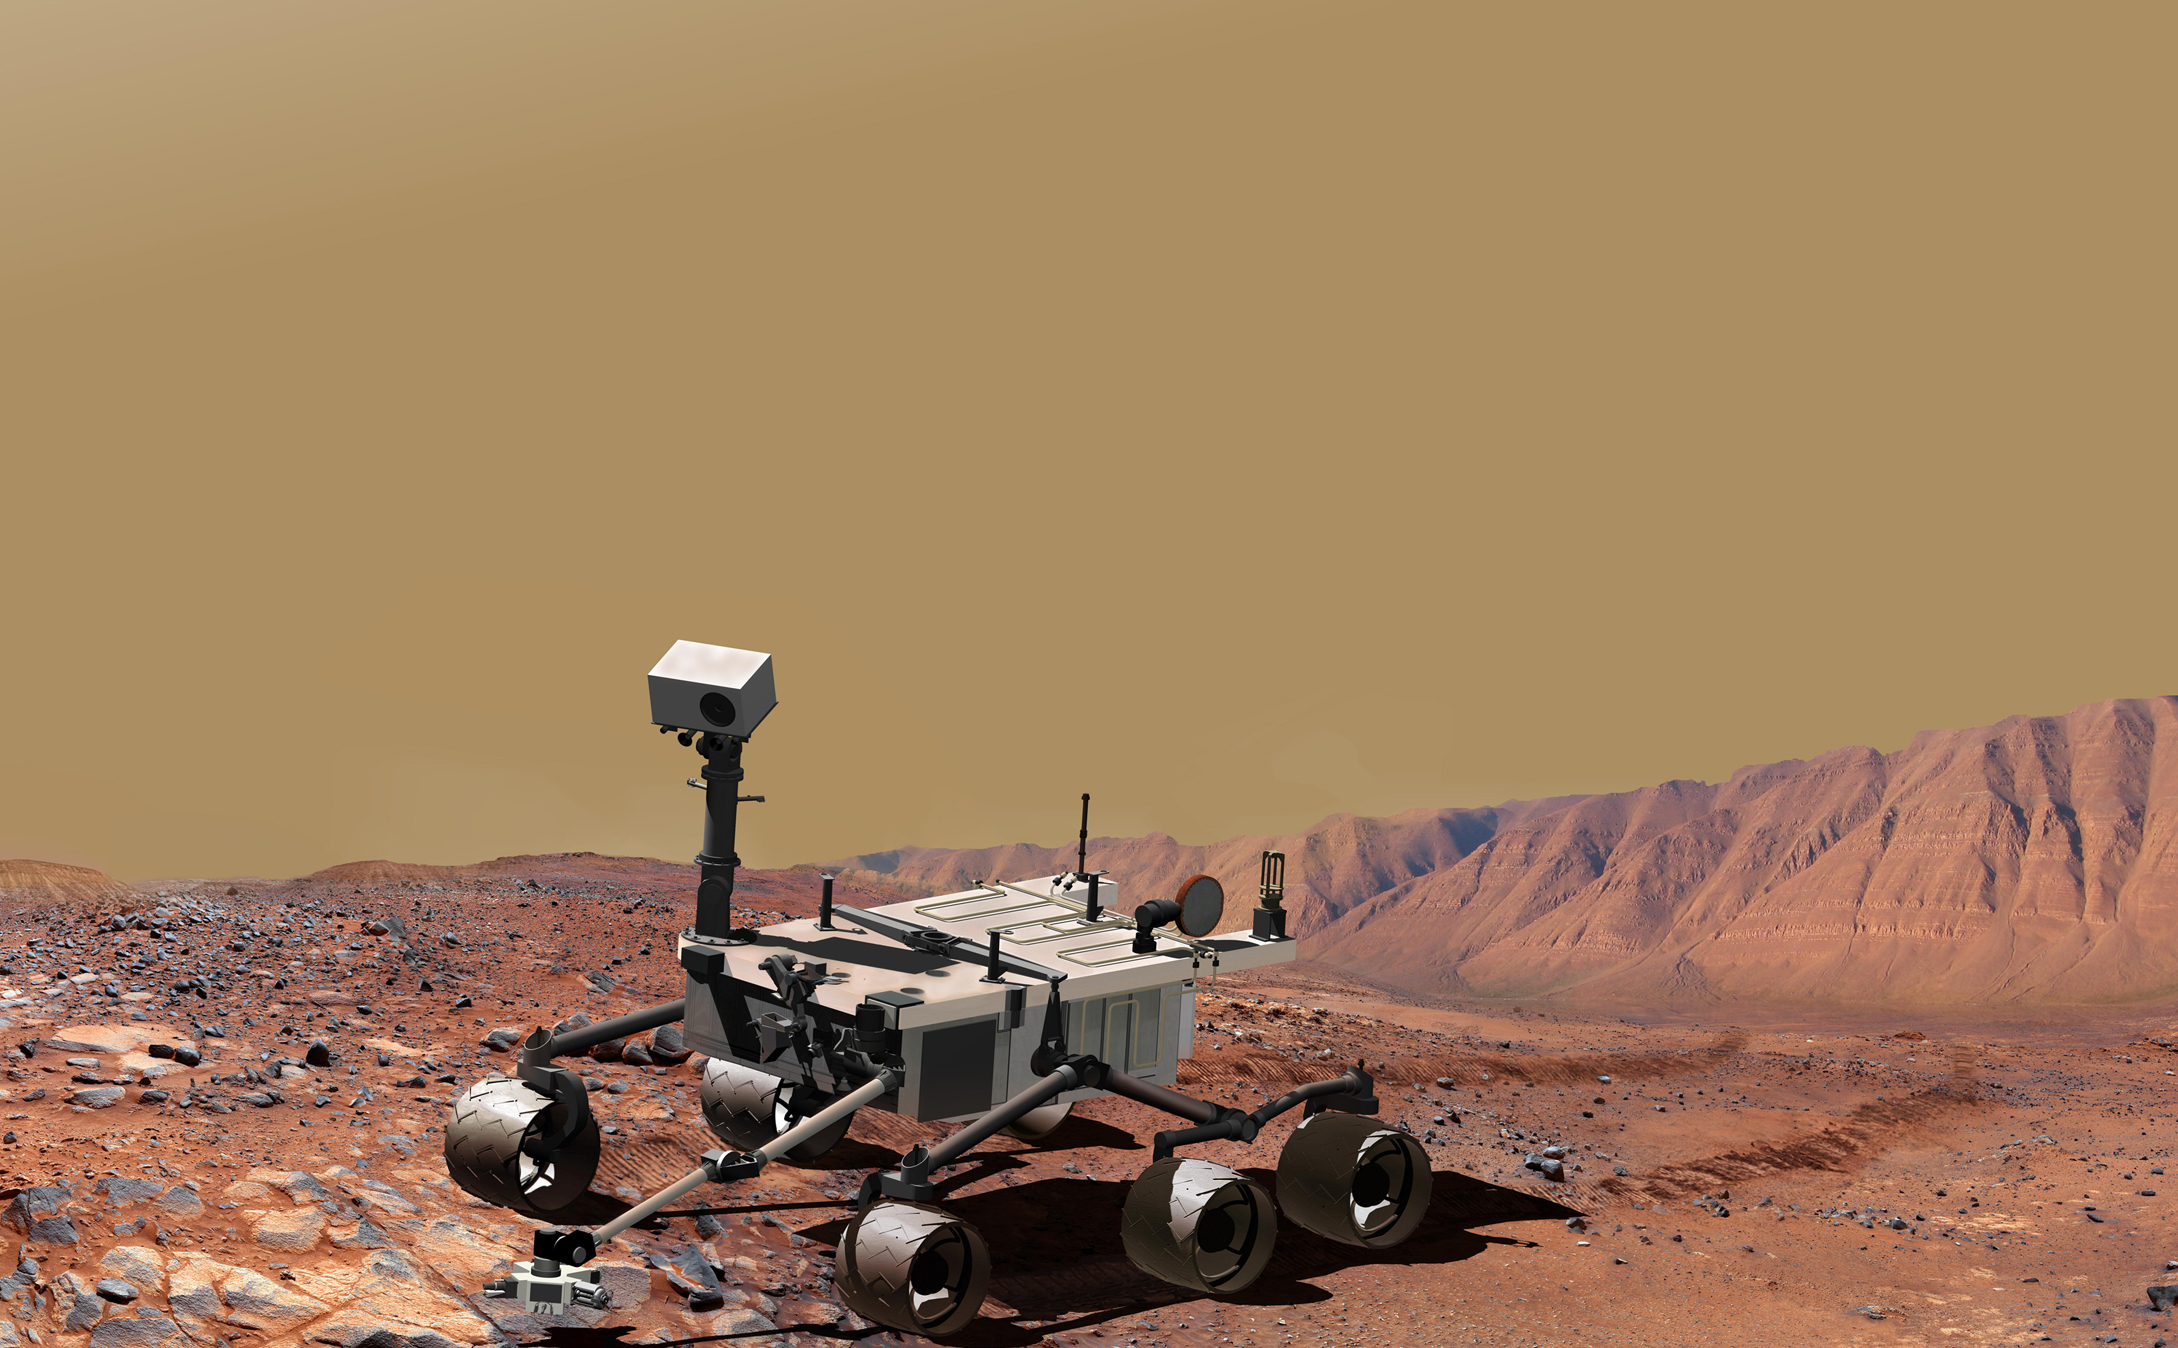 NASA's Mars Science Laboratory, a mobile robot for investigating Mars' past or present ability to sustain microbial life, is in development for a launch opportunity in 2009.